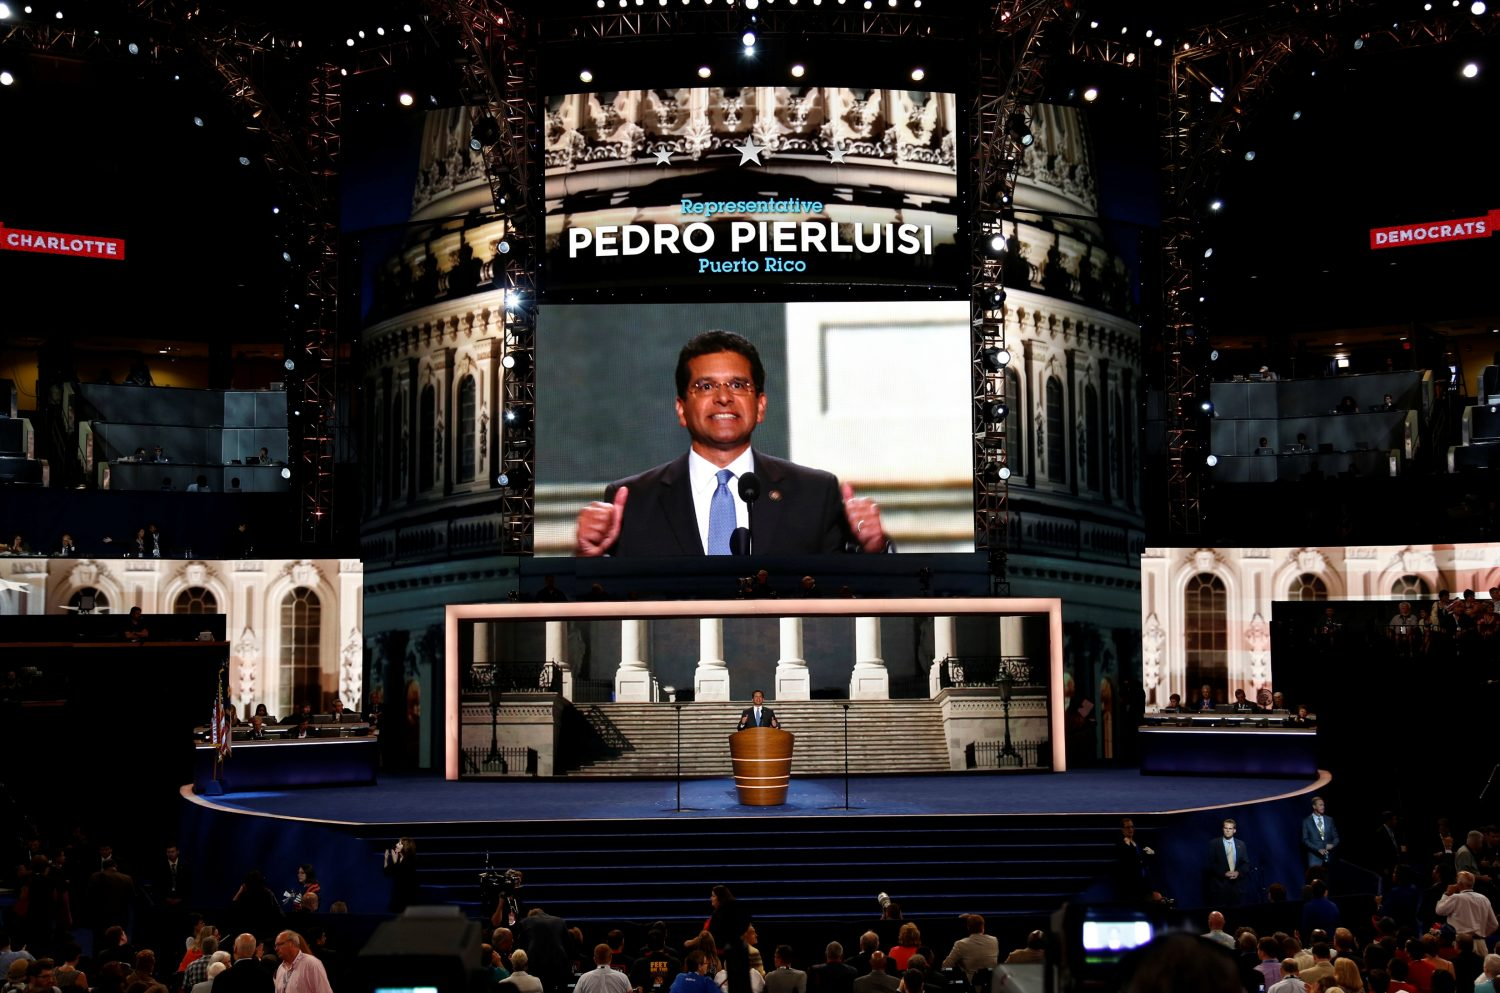 FILE PHOTO: Rep. Pedro R. Pierluisi (D-PR), addresses delegates during the second session of the Democratic National Convention in Charlotte, North Carolina, September 5, 2012. REUTERS/Jason Reed